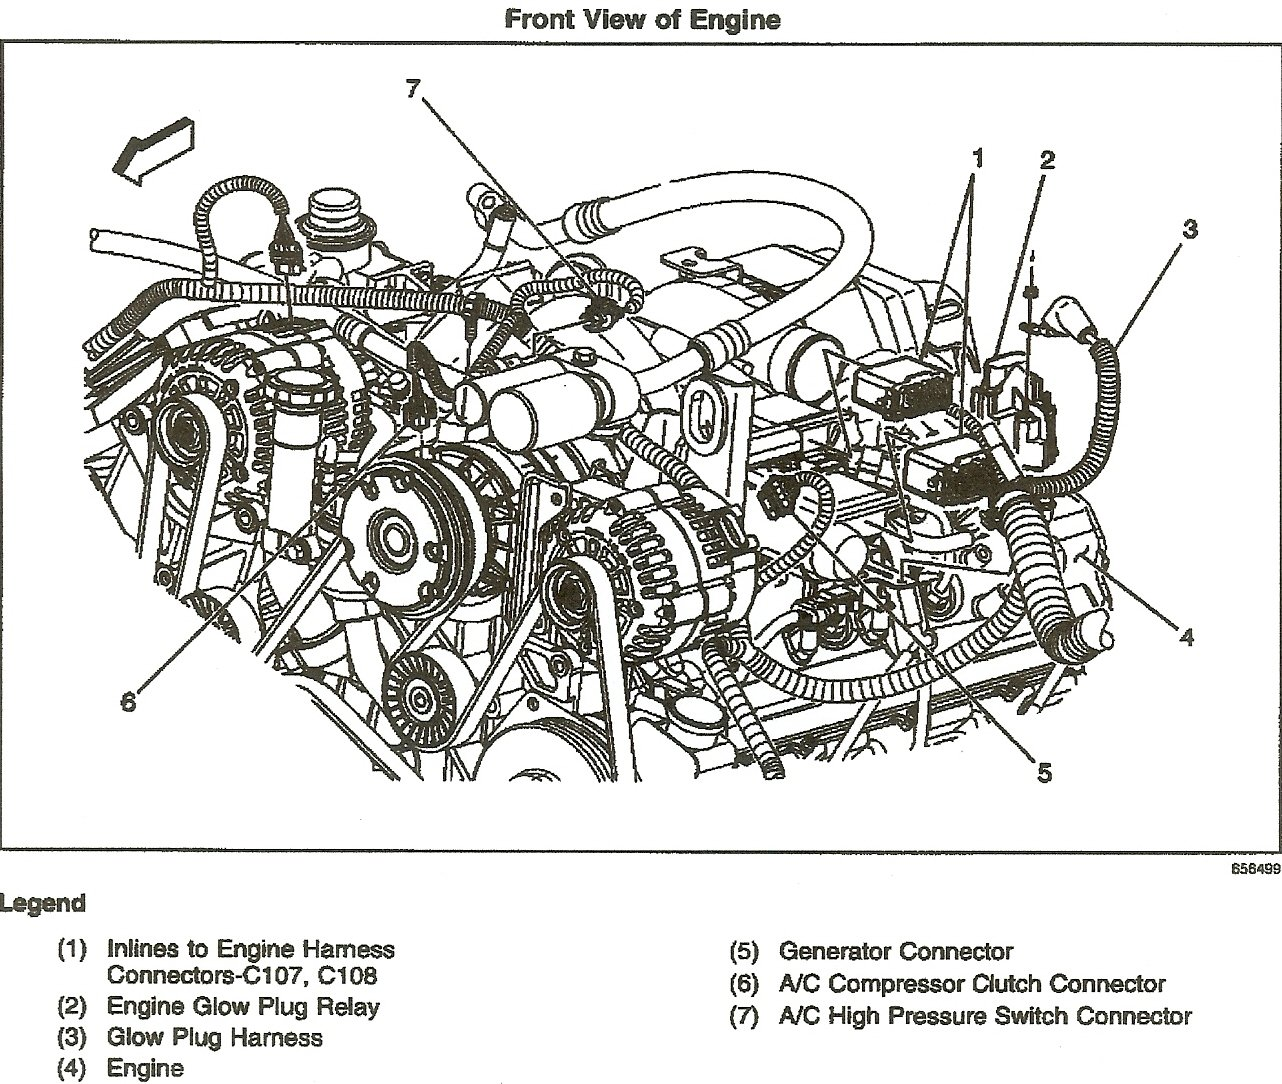 Chevy Cavalier Z24 2 4 Engine Diagram moreover Engine Diagram For 2011 Chevy Traverse together with Camshaft Position Sensor Location 2008 Buick Enclave as well 129 Diesel Belt Routing moreover Chevy Malibu 3 1 Engine Diagram. on 2003 chevy malibu belt diagram